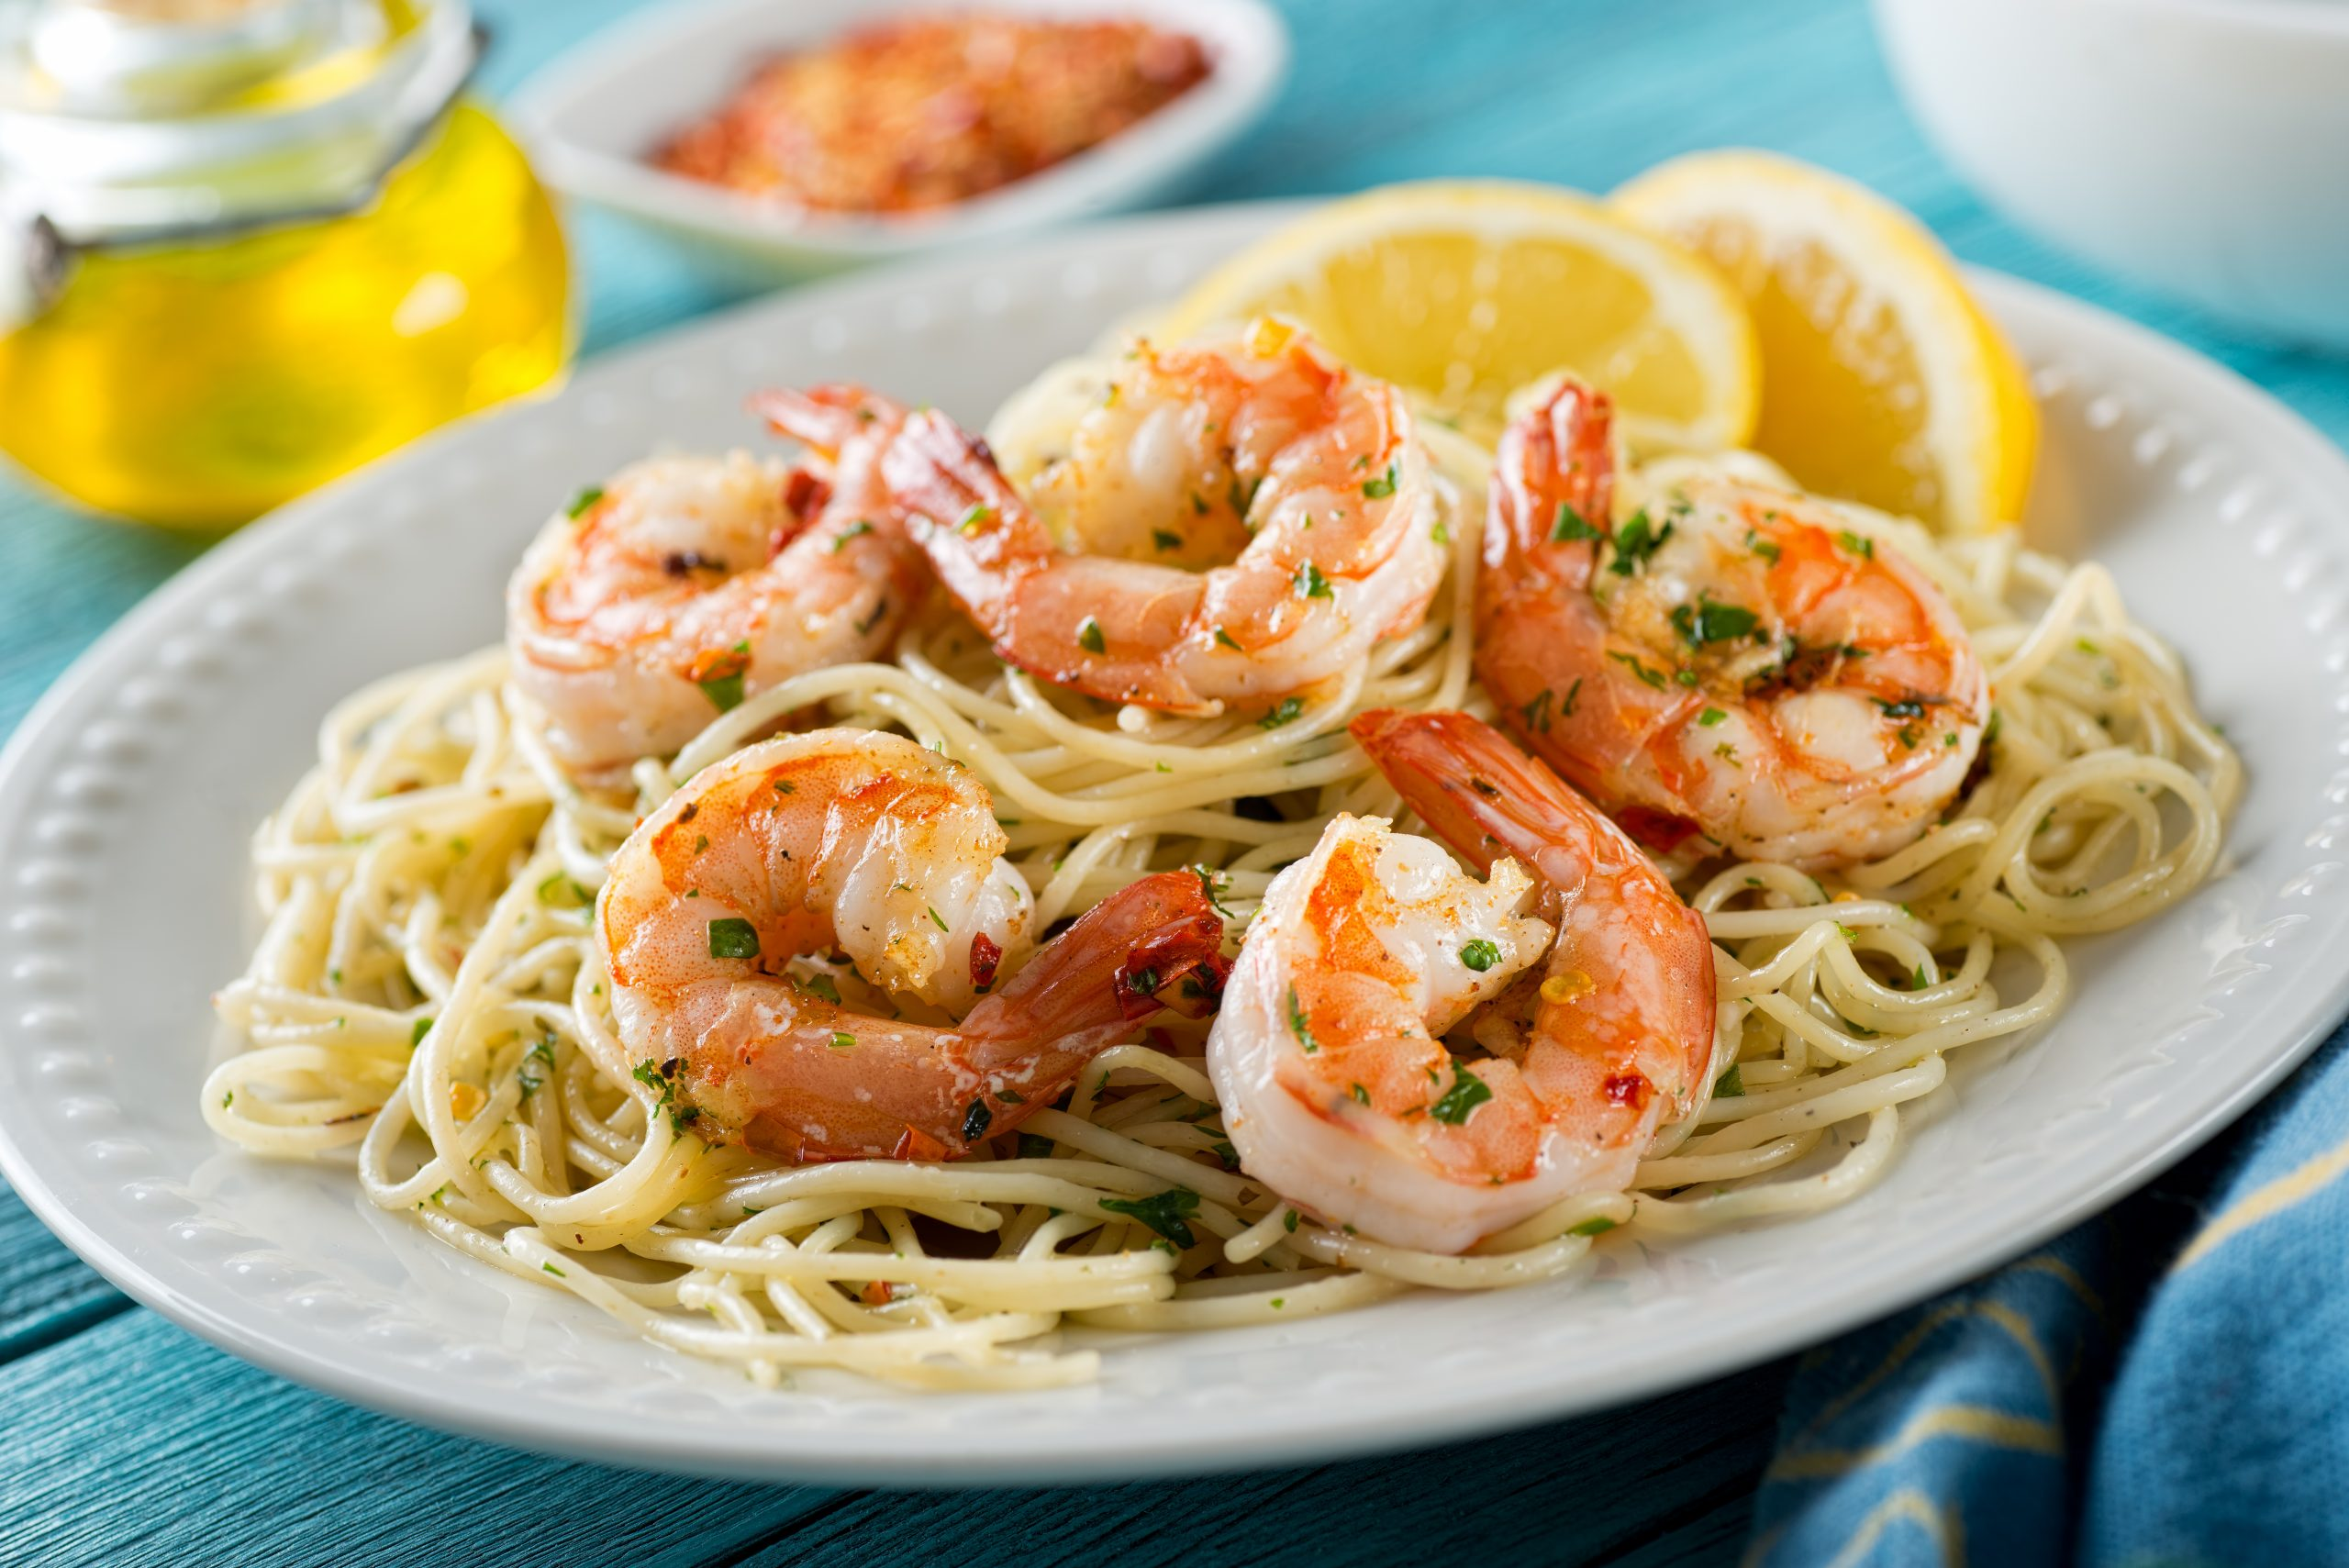 Shrimp scampi at one of the best seafood restaurants in Fort Lauderdale